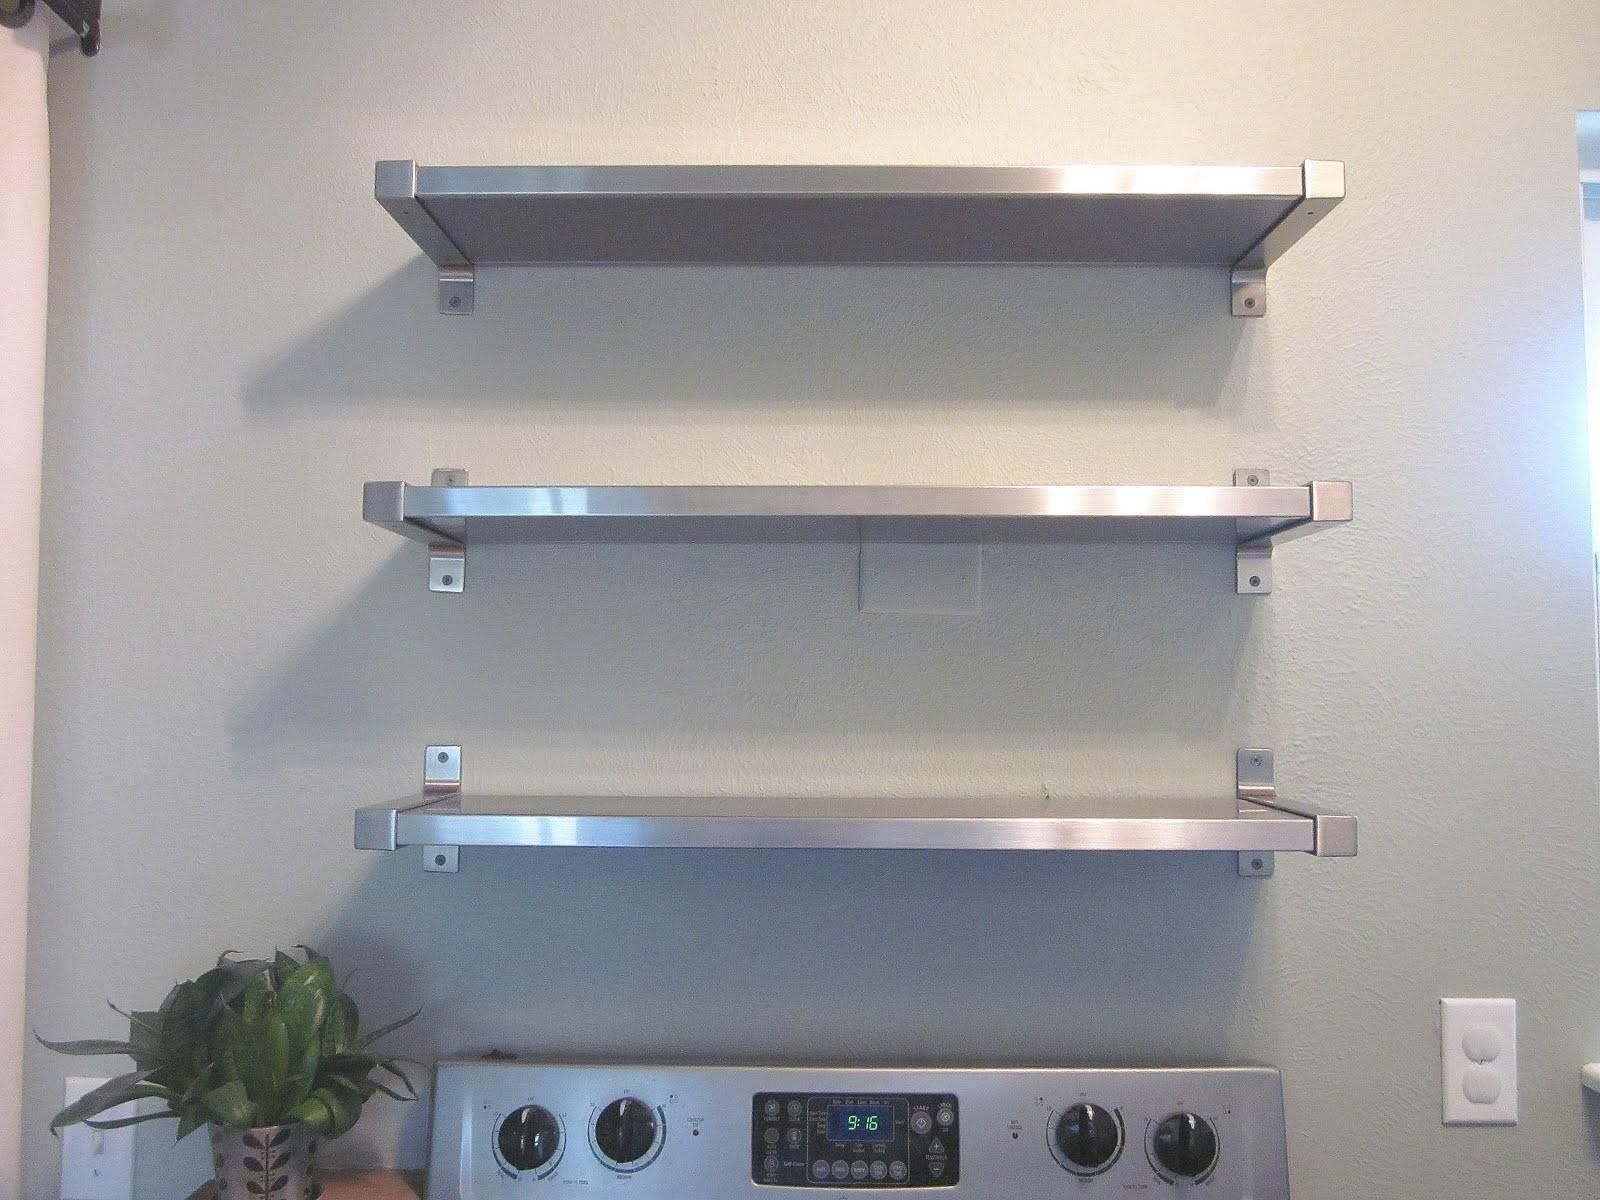 Merveilleux Stainless Steel Wall Shelves For Kitchen